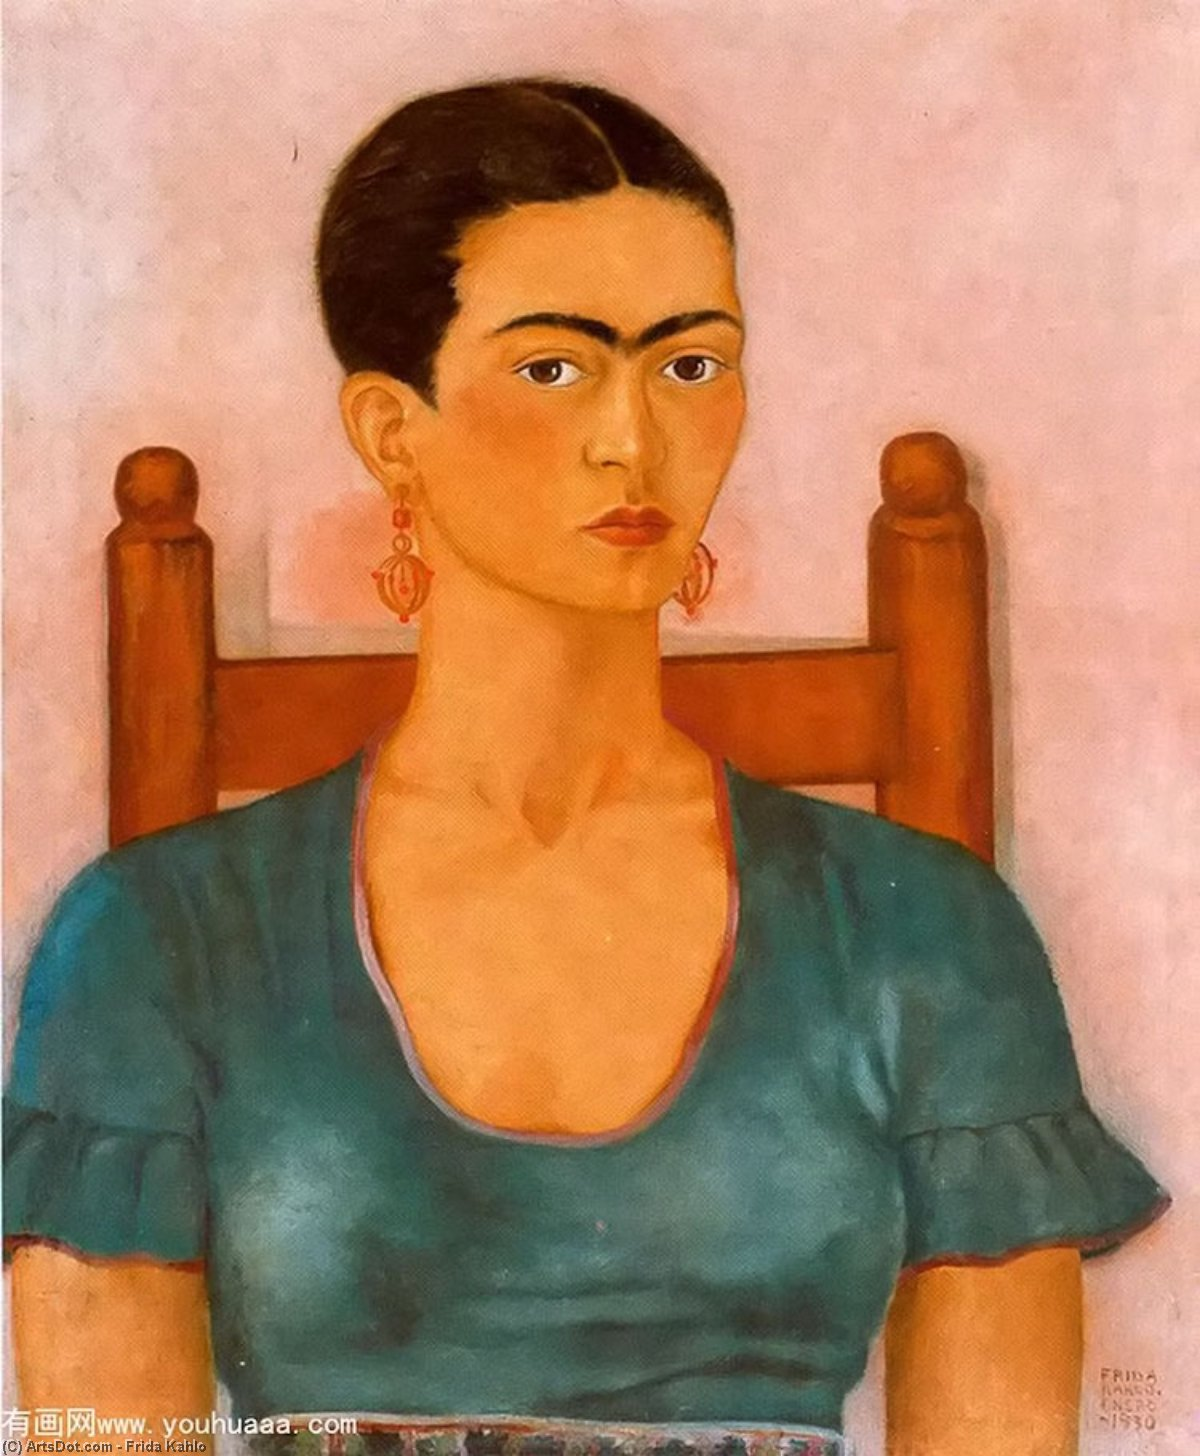 Self-Portrait 3, Oil by Frida Kahlo (1907-1954, Mexico)